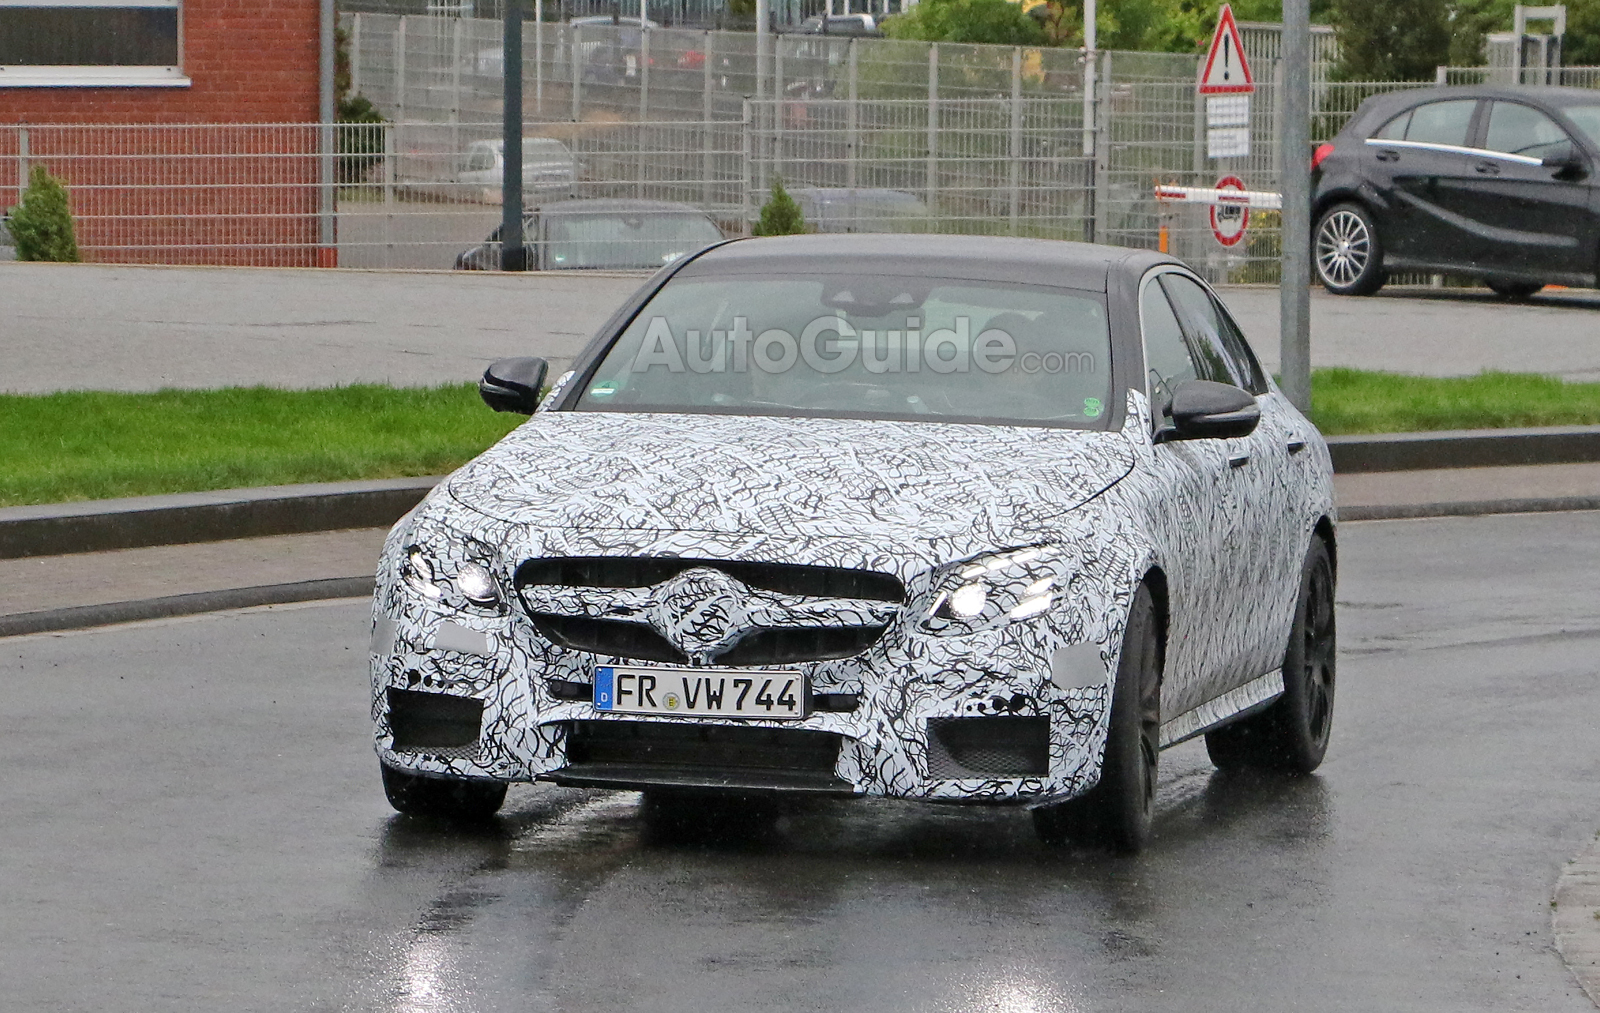 https://www.autoguide.com/blog/wp-content/gallery/mercedes-benz-e63-amg-spy-photos-june-22-2015/mercedes-benz-e63-amg-spy-photos-01.jpg